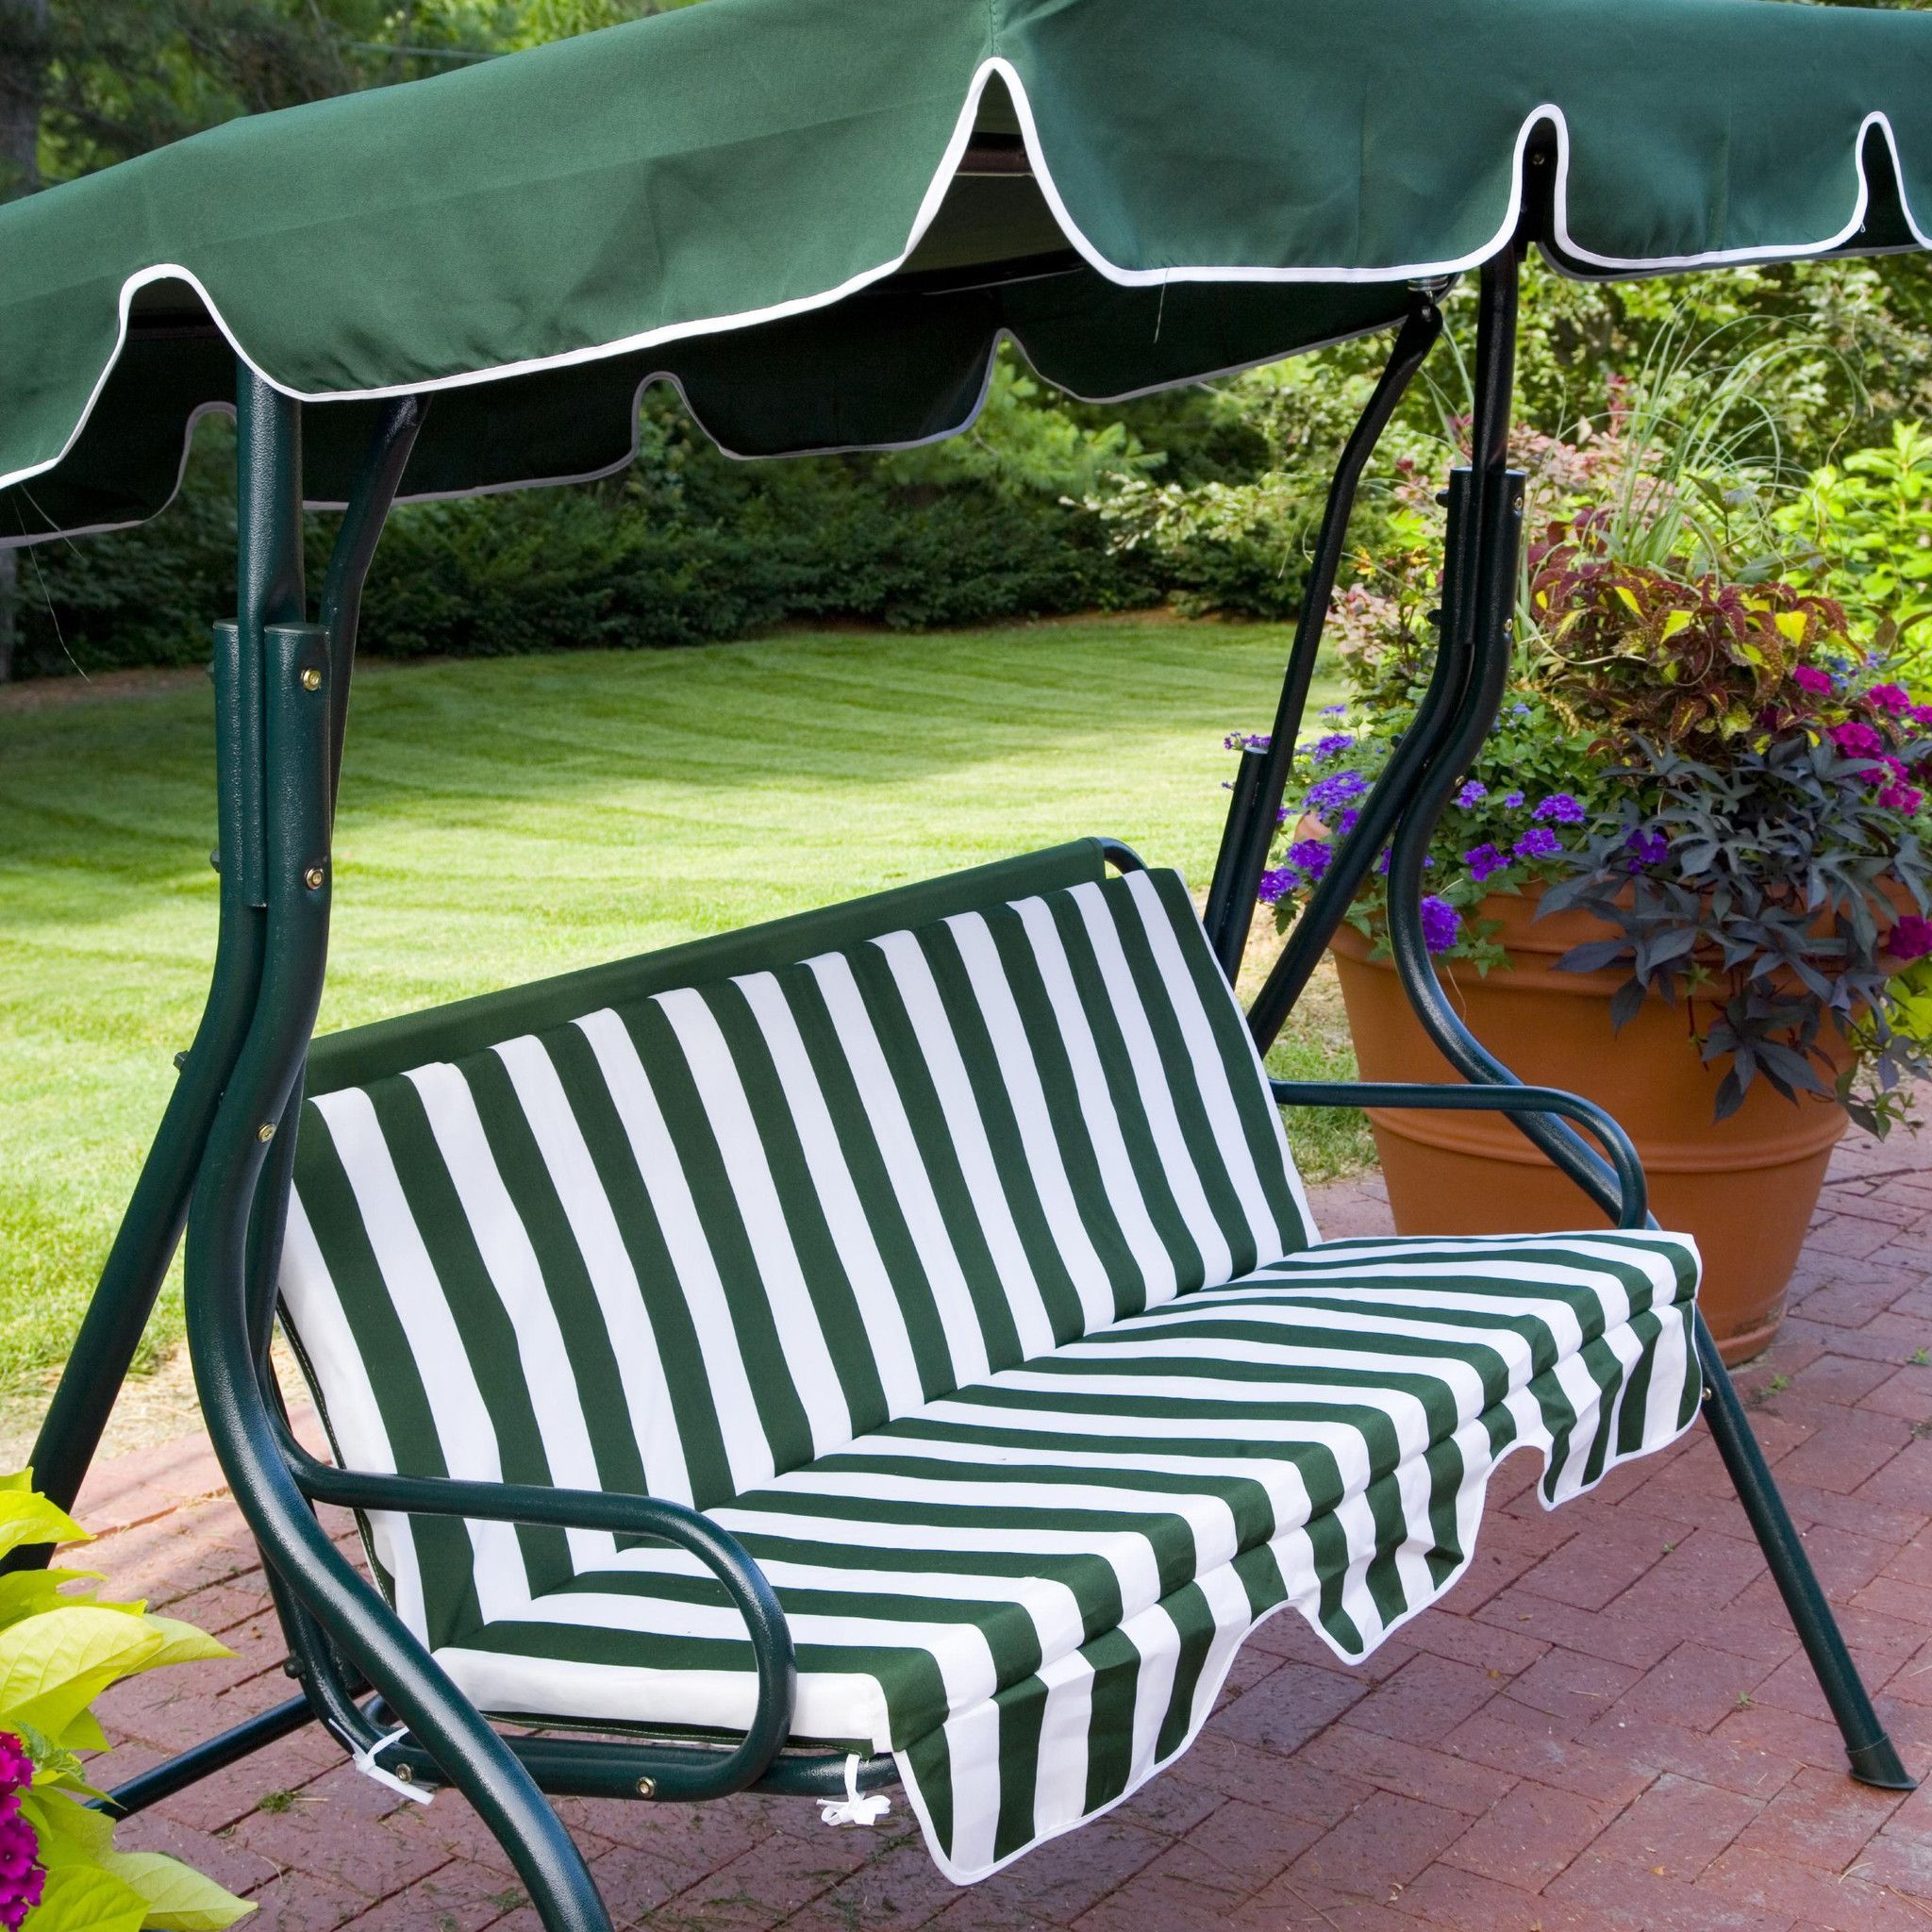 Canopy chair dimensions - Canopy Metal Adjustable Tilt Porch Patio Swing In Dark Green White Striped Assembled Dimensions X X Inches Sturdy Steel Construction In Dark